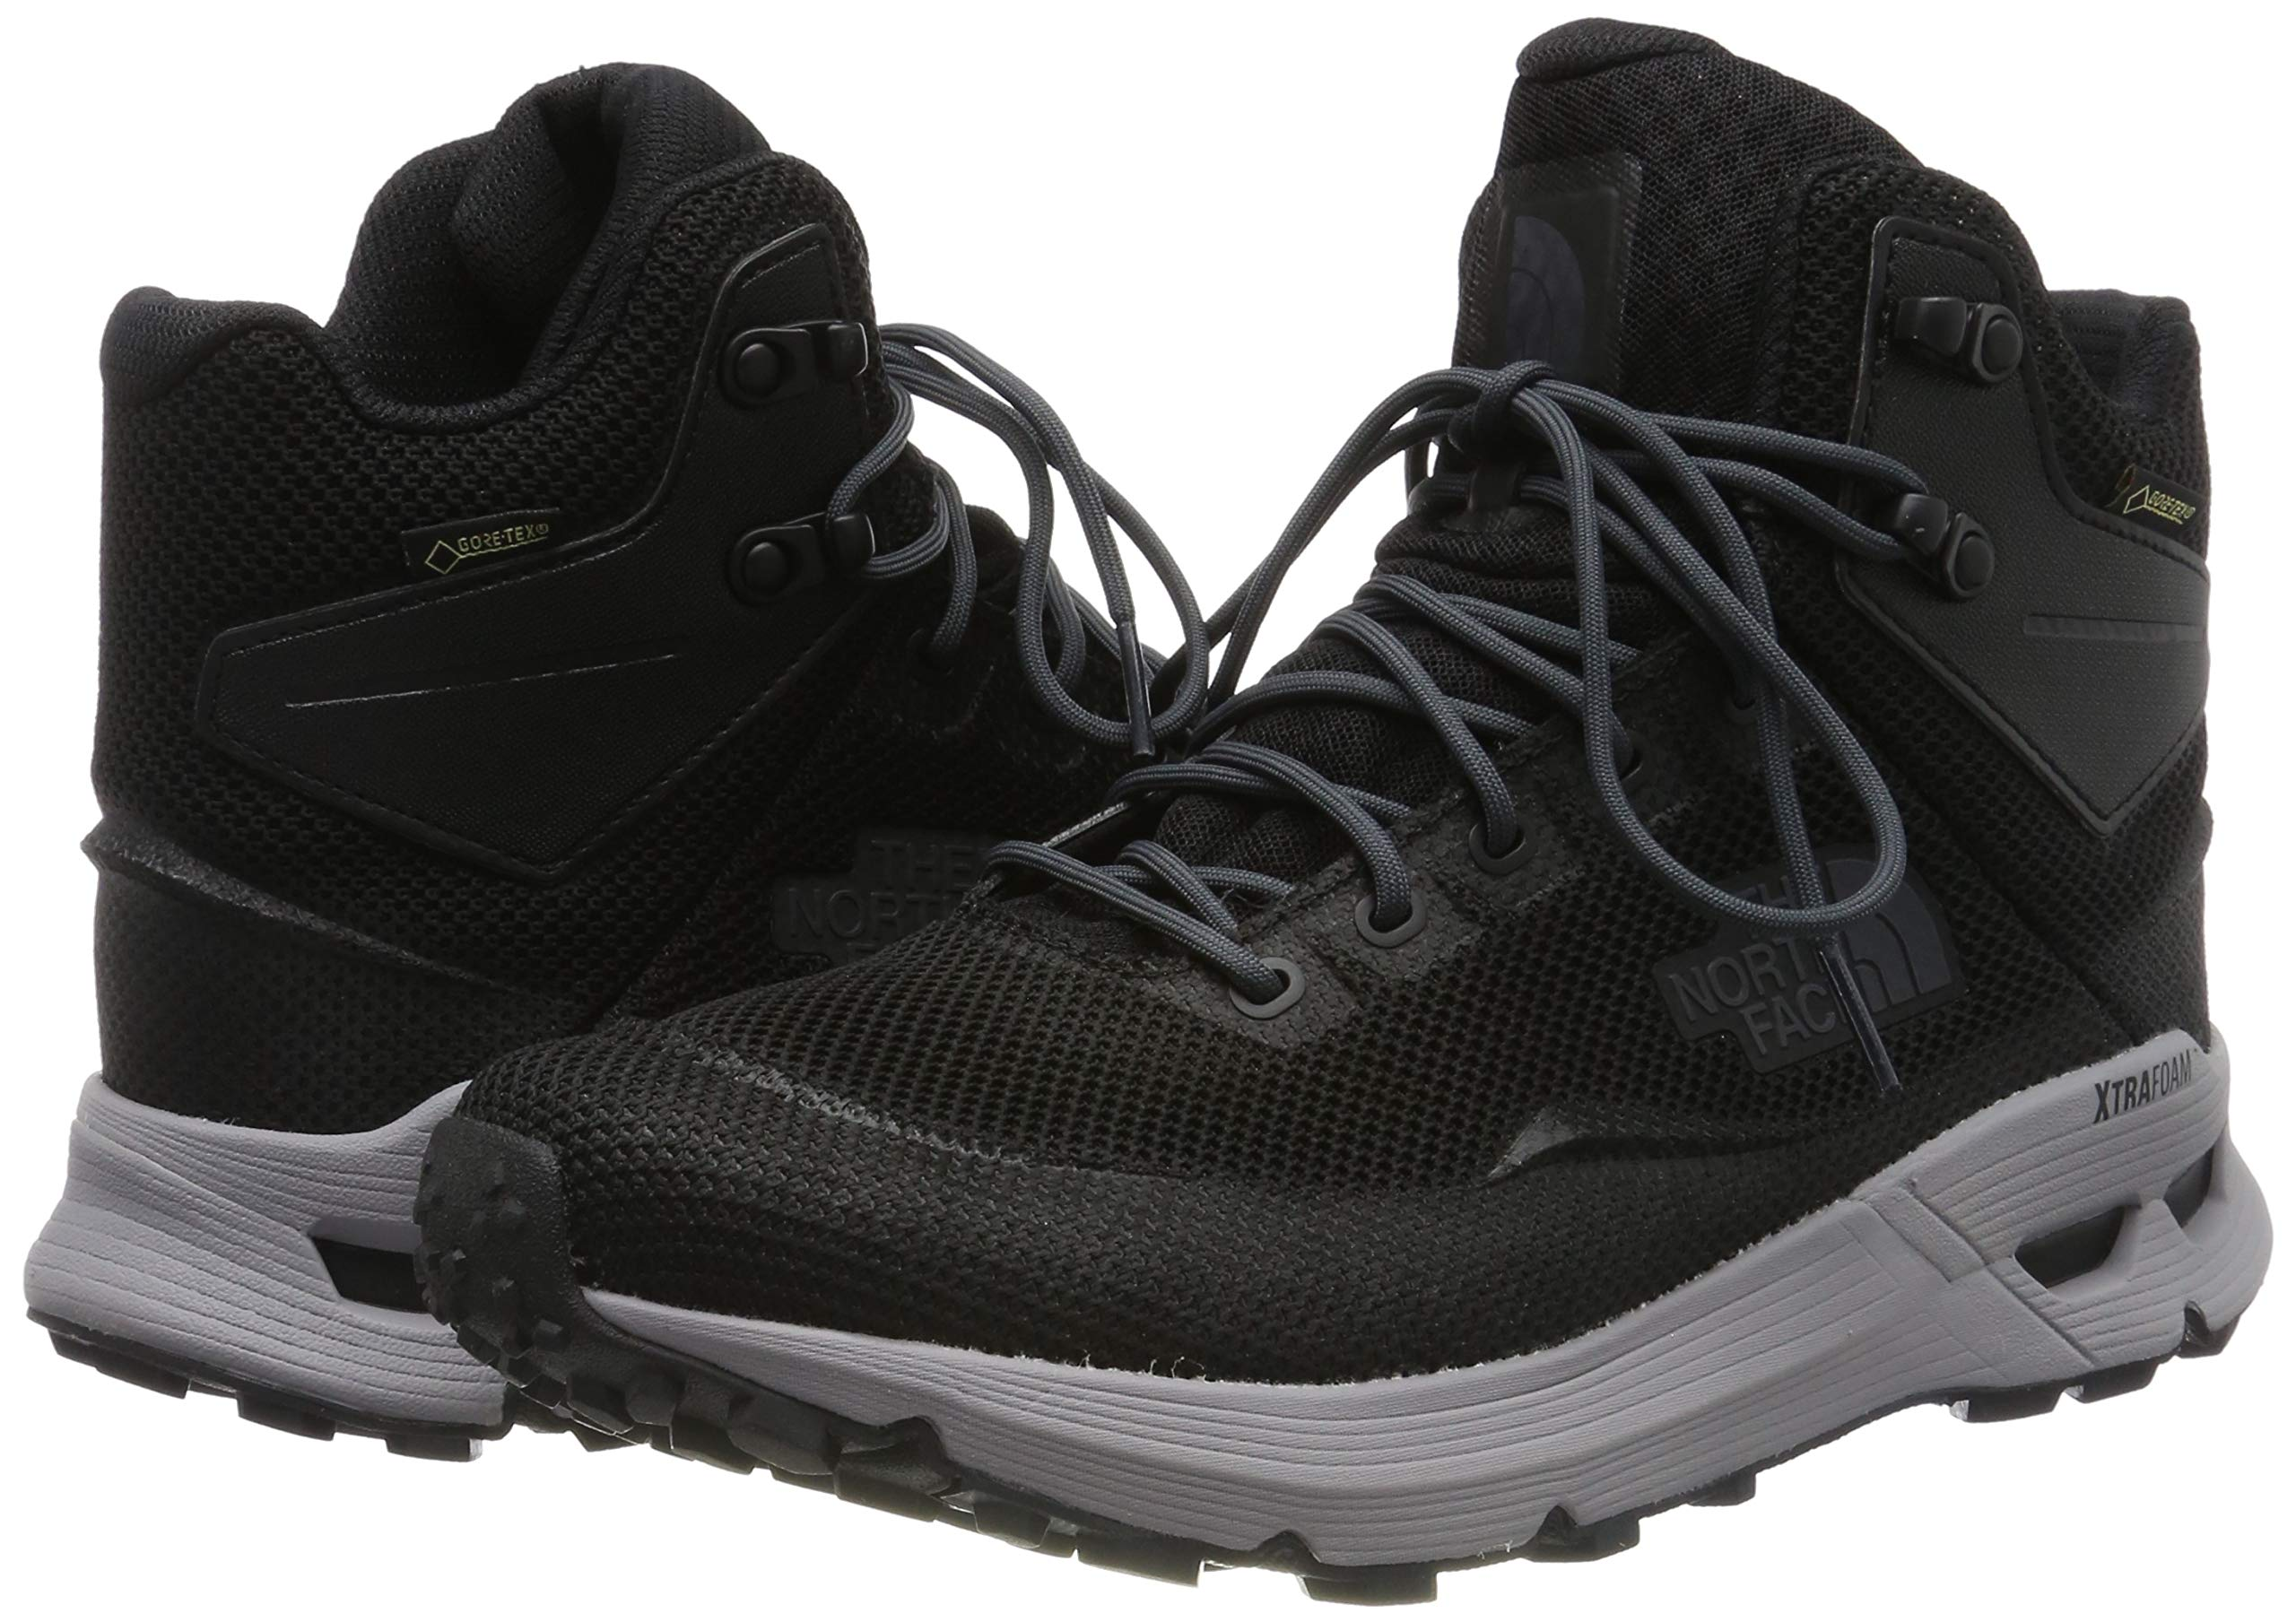 M SAFIEN MID GTX High Rise Hiking Boots